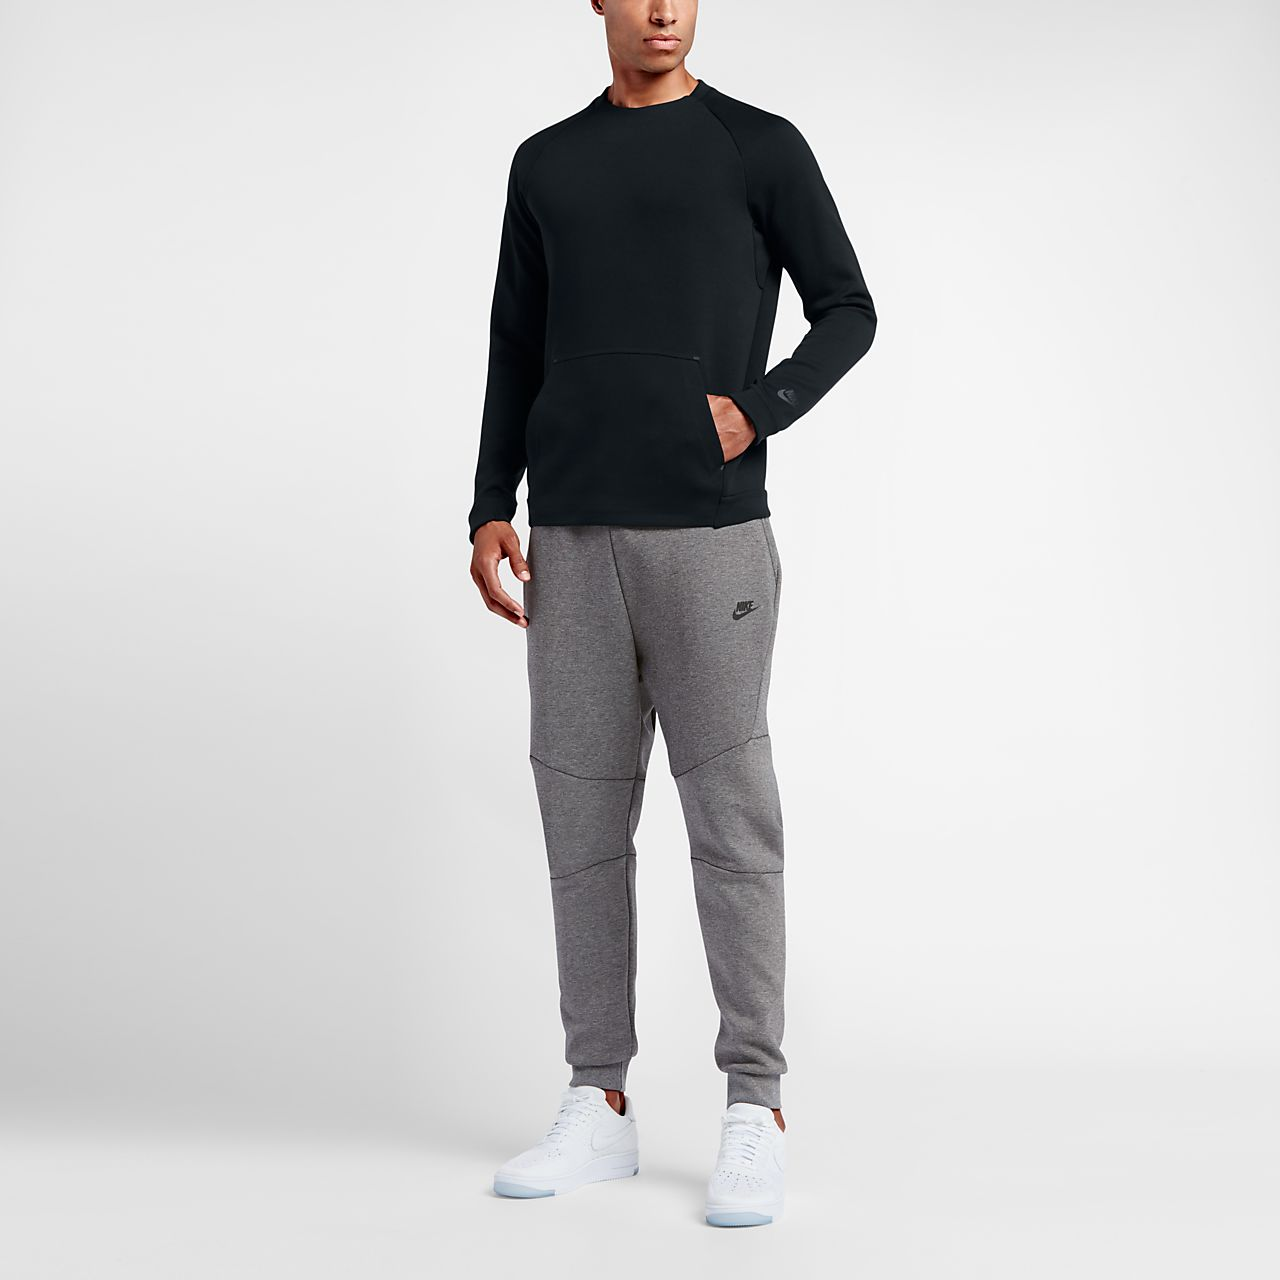 nike outfits for men. nike sportswear tech fleece crew men\u0027s sweatshirt outfits for men